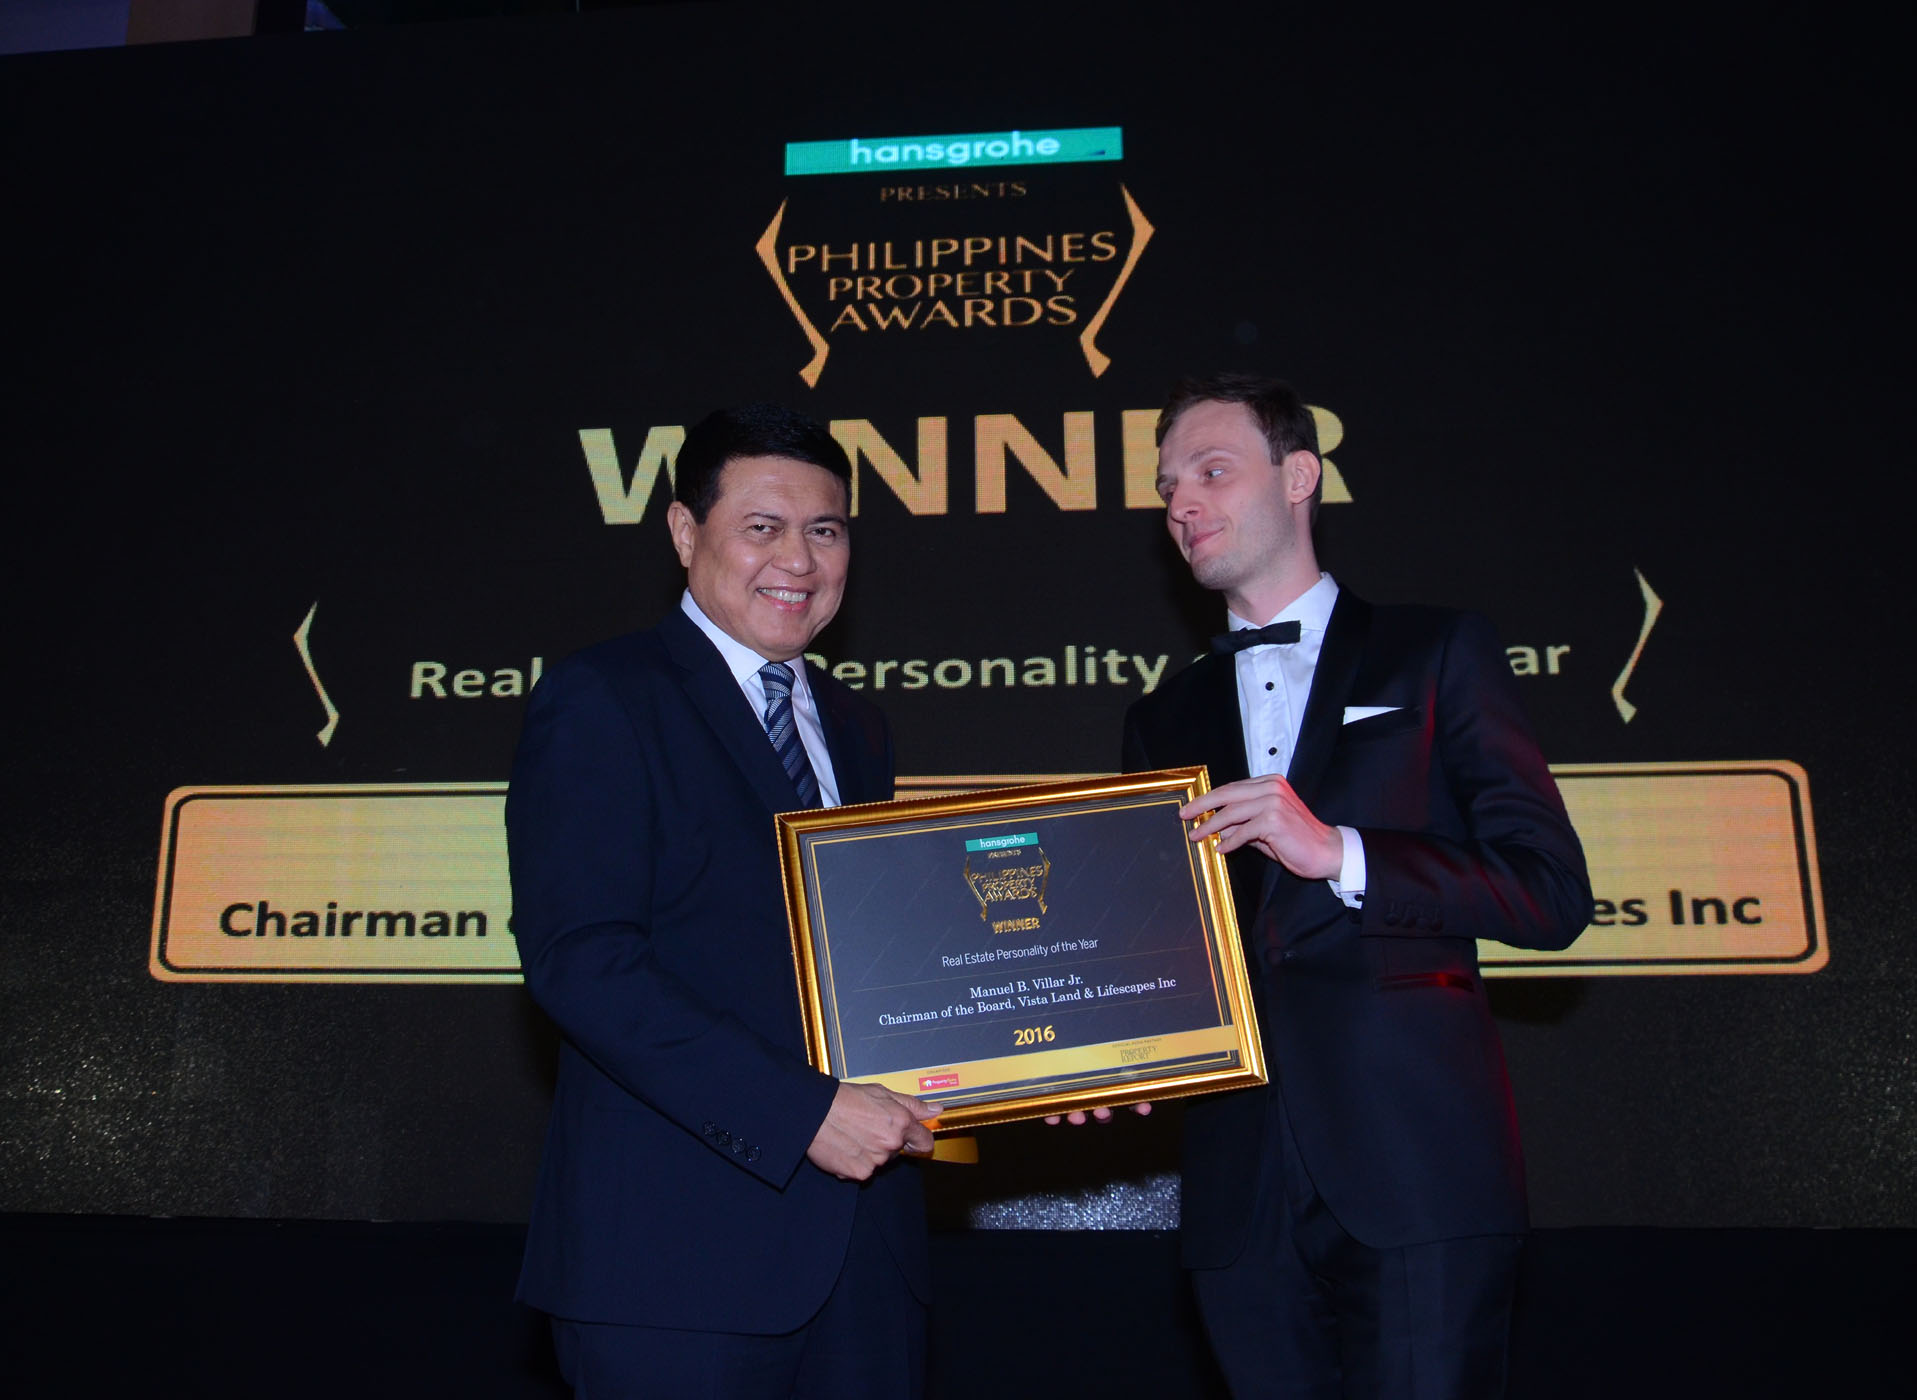 PHILIPPINES PROPERTY AWARDS Real Estate Personality of the Year